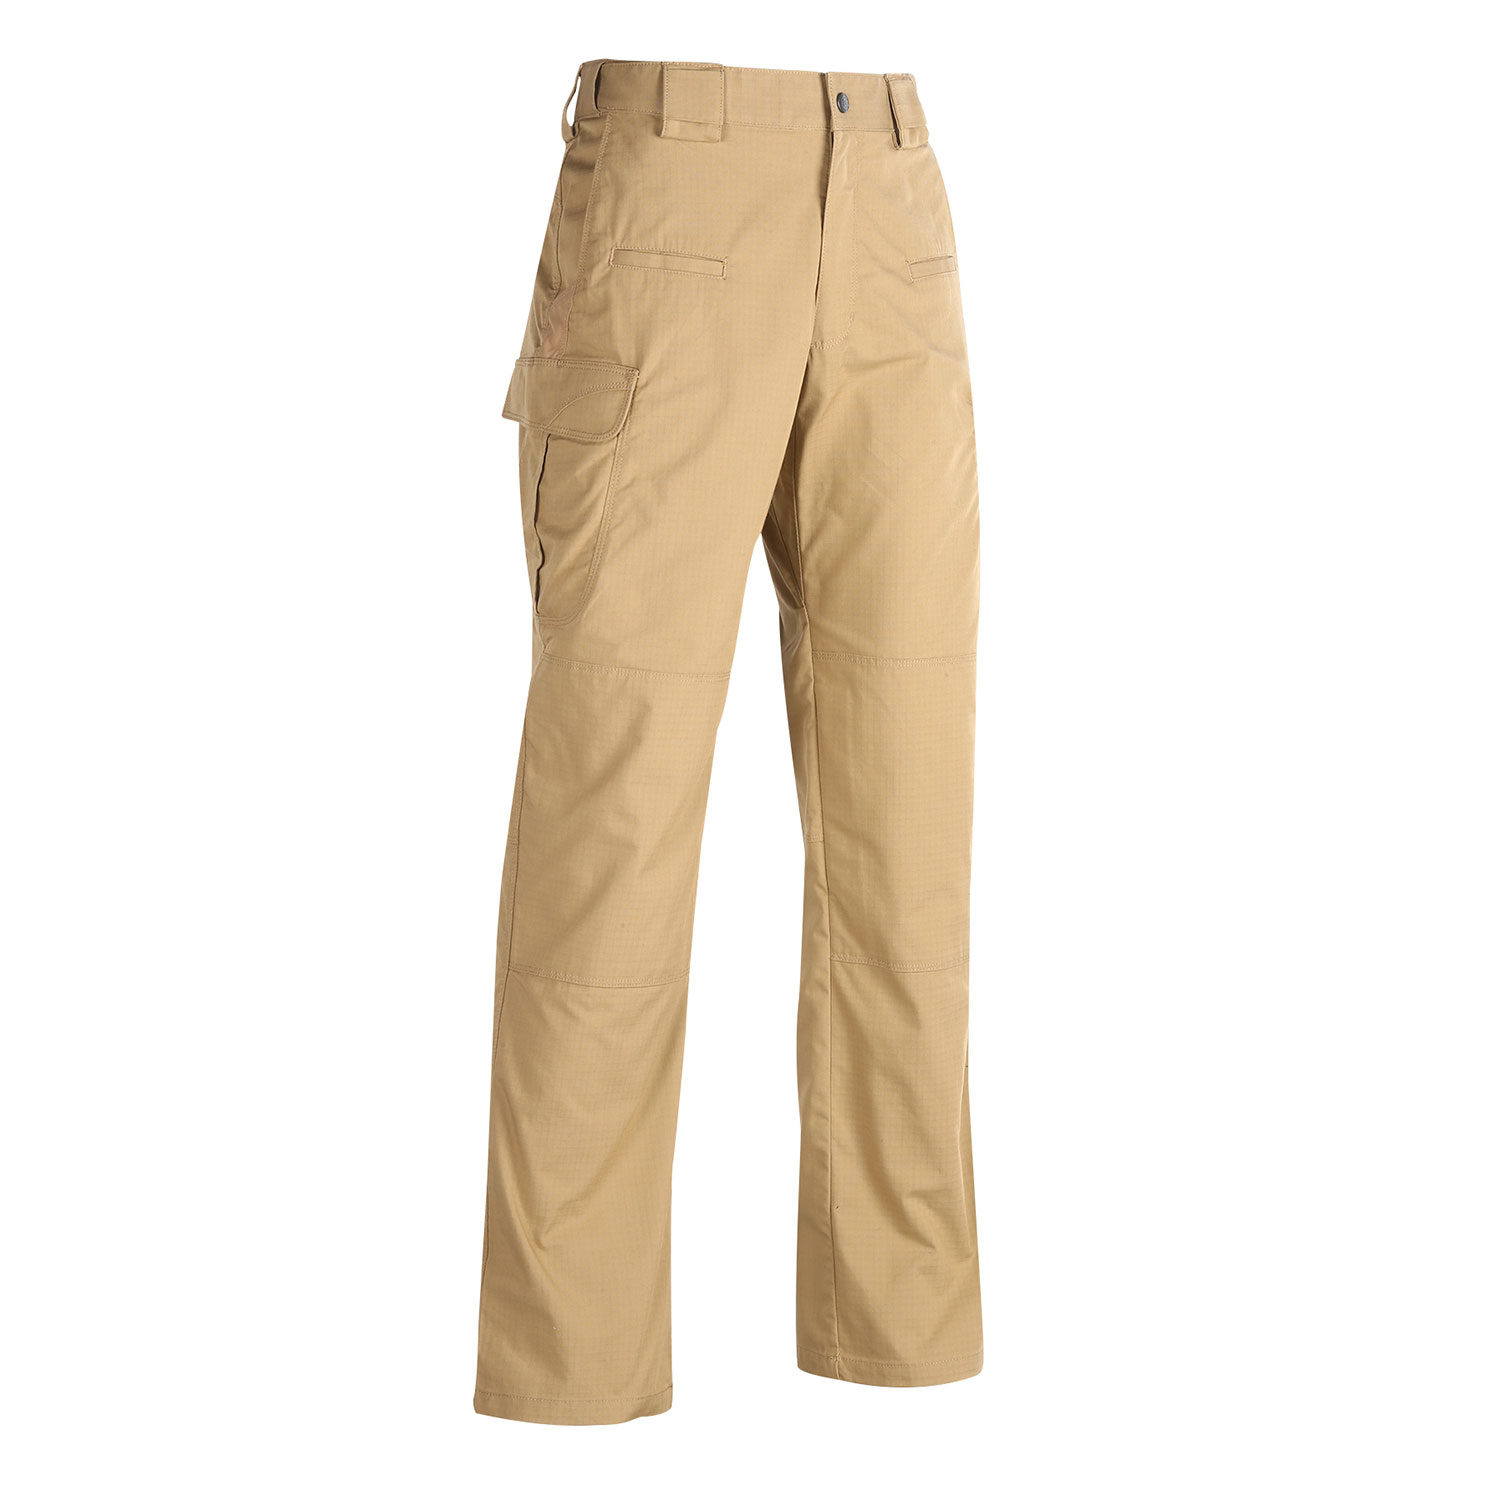 7a57693c 5.11 Tactical Stryke Pant with FlexTac.